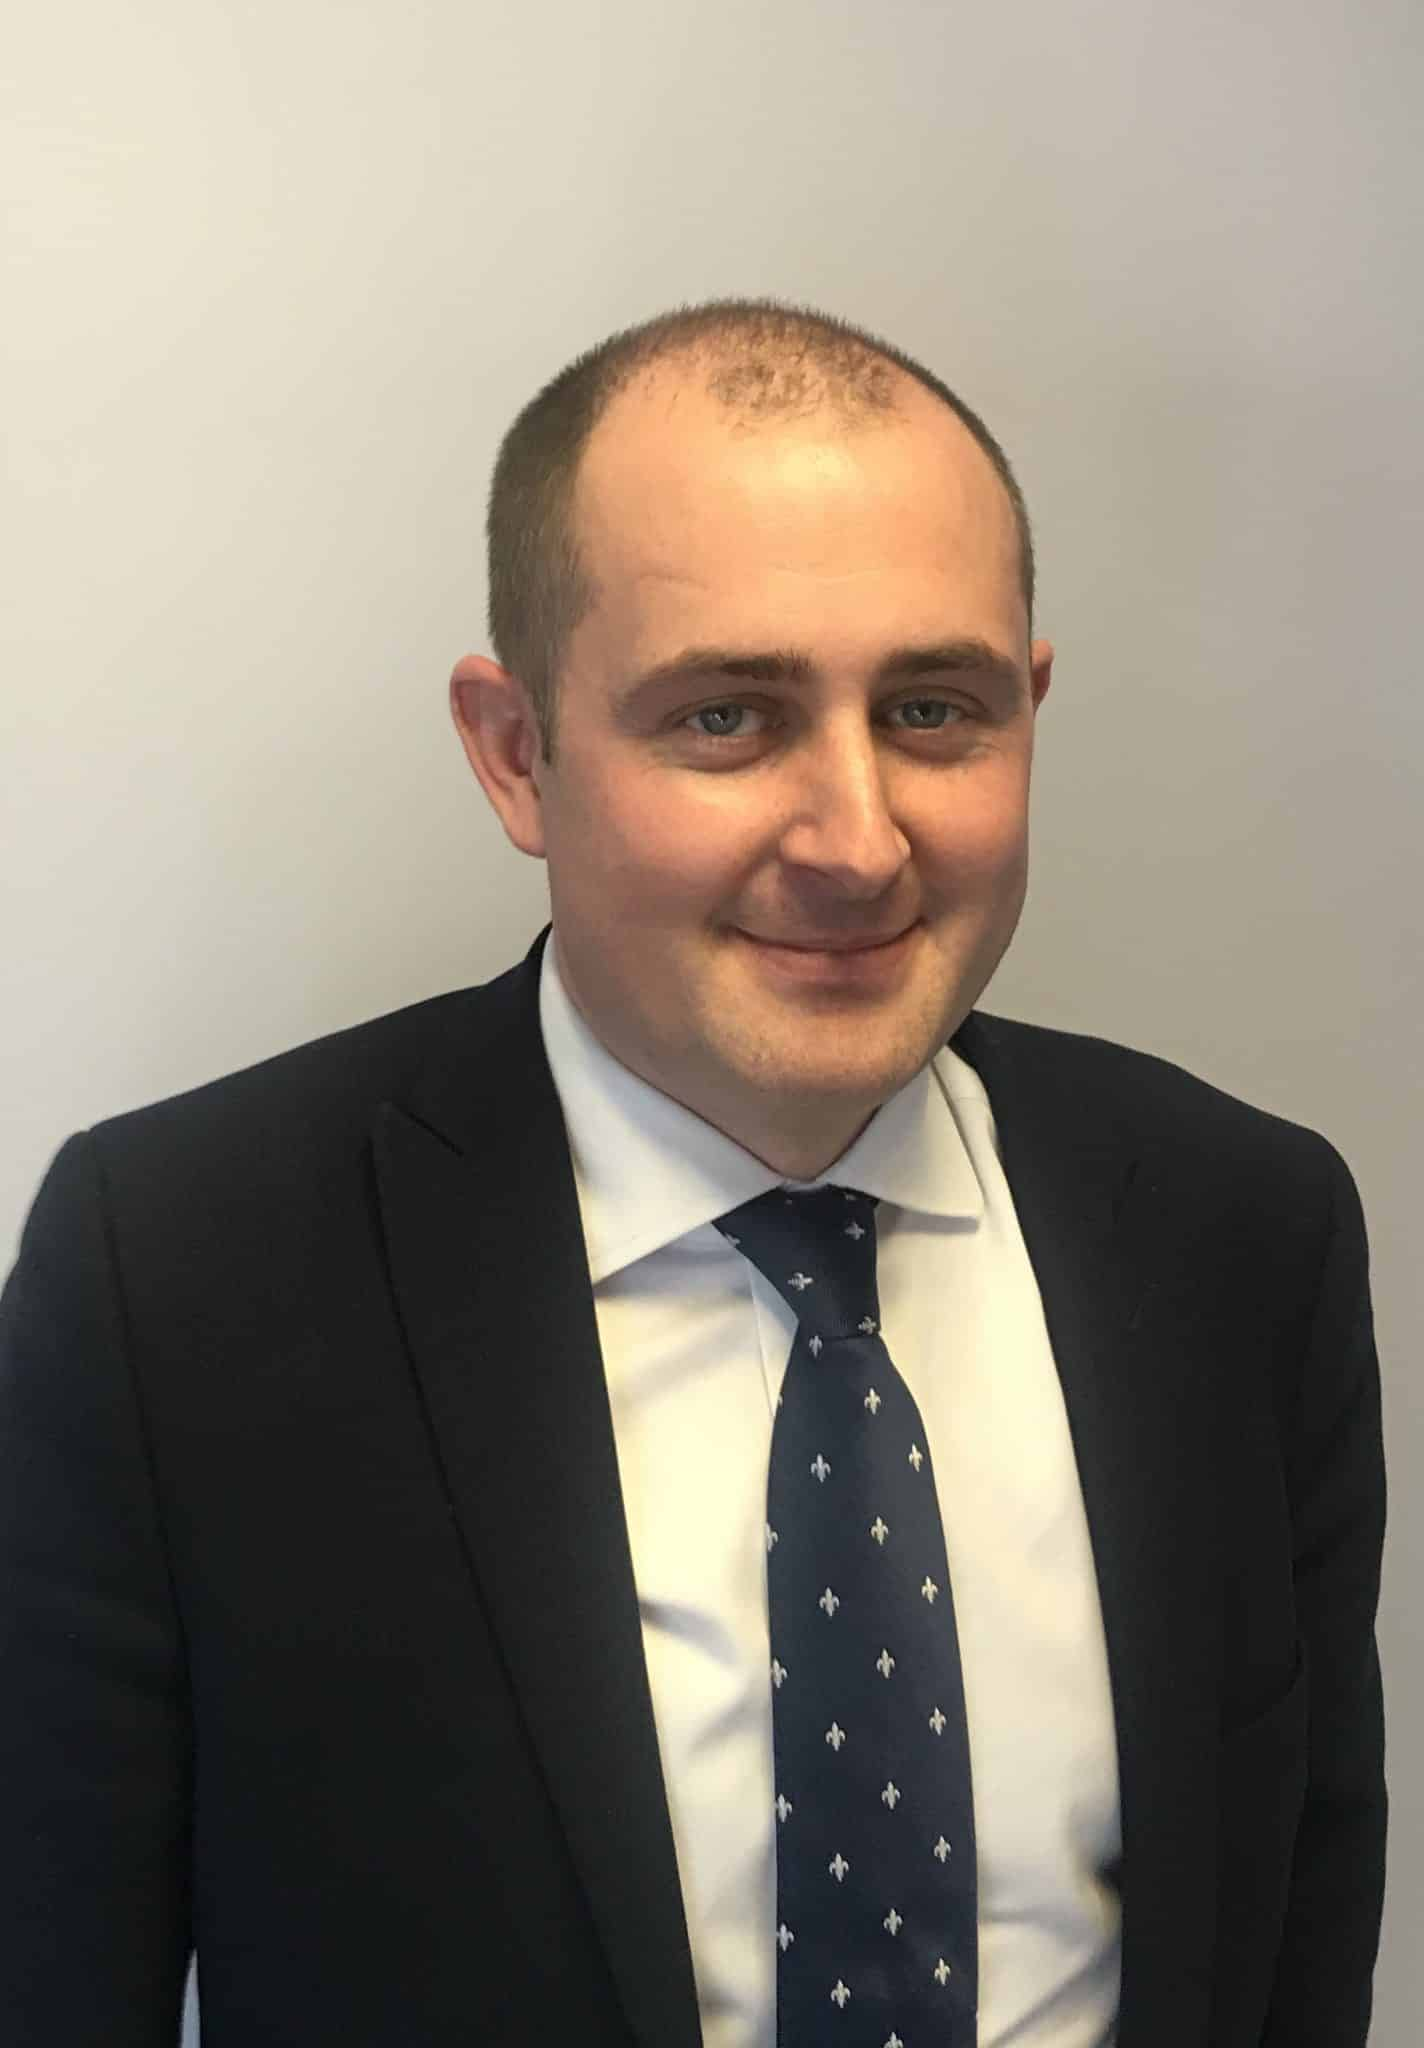 Gallagher announces new branch director for Ipswich team